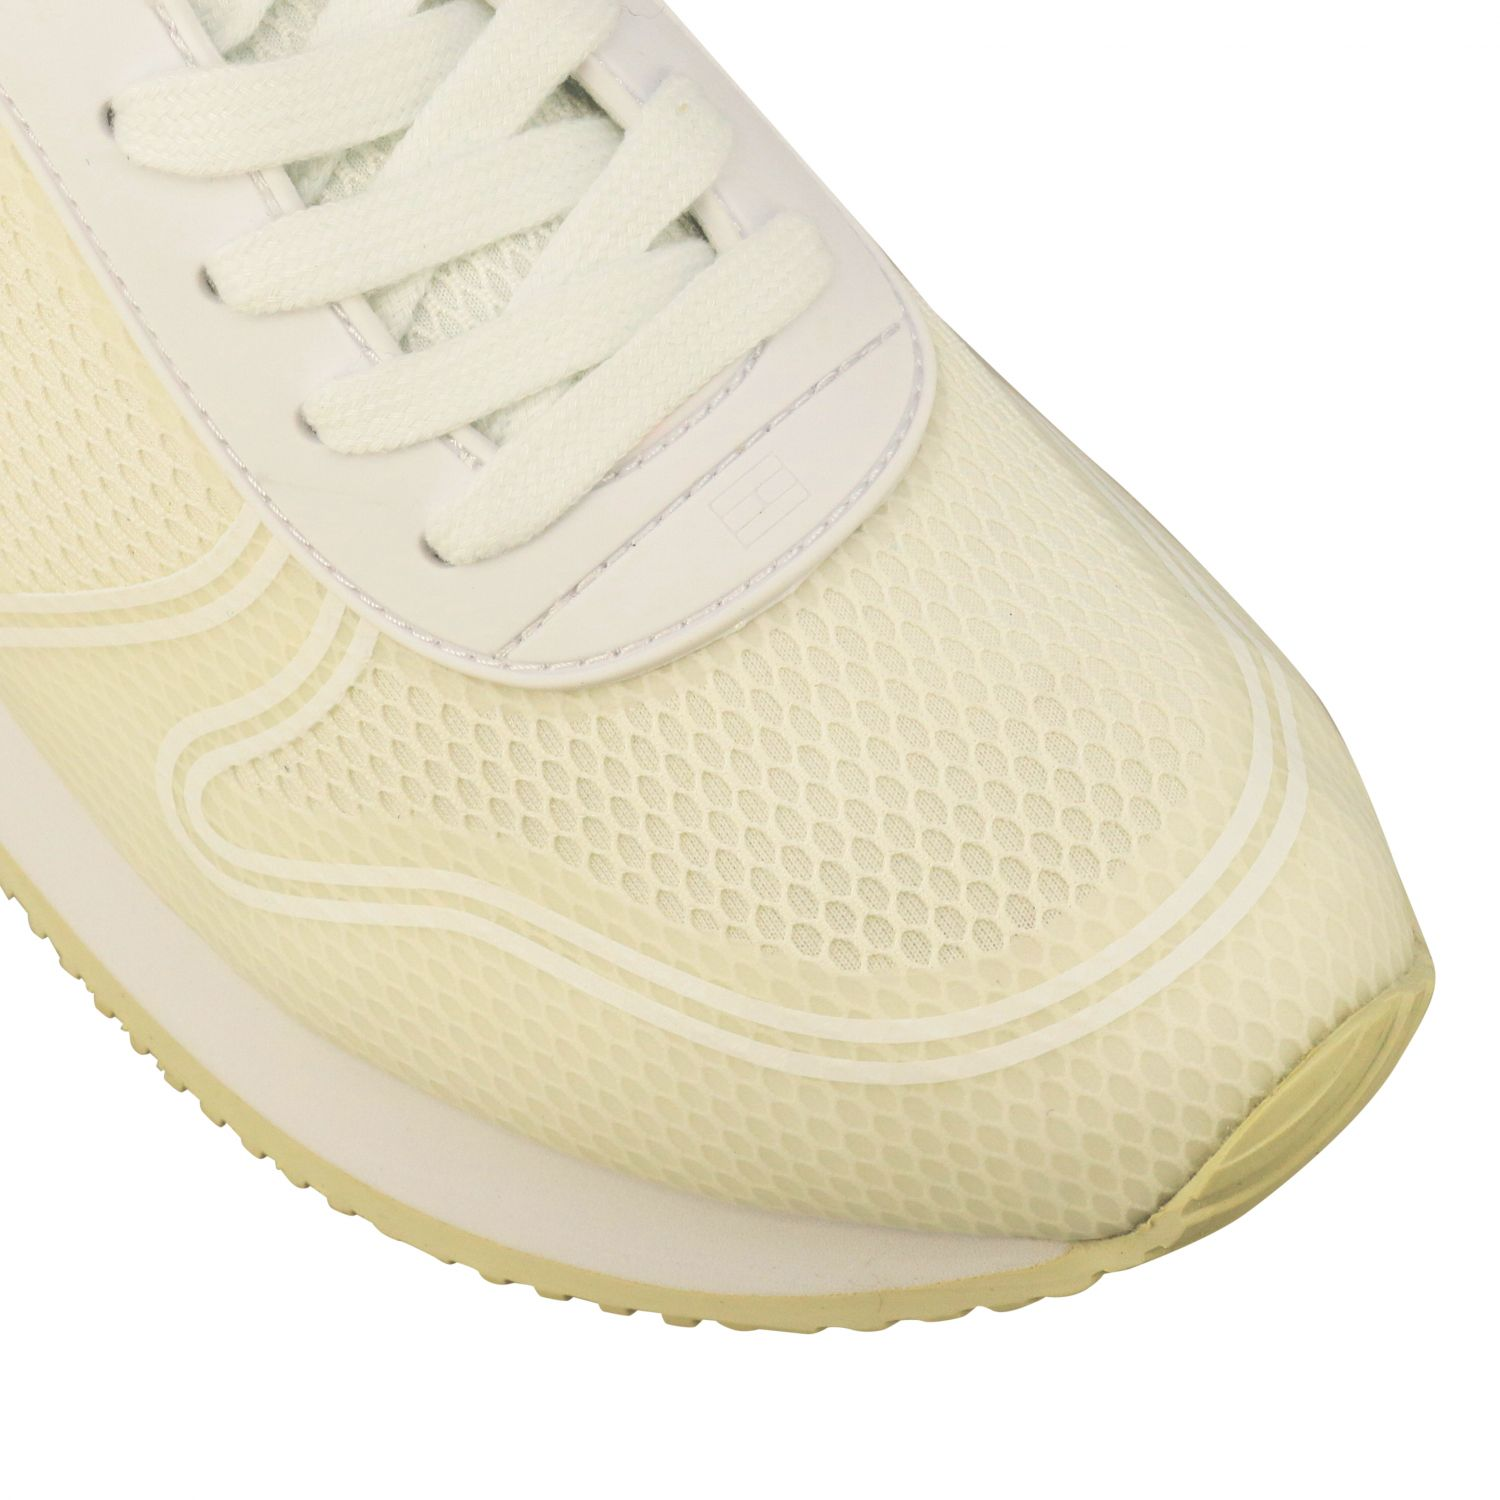 Sneakers donna Tommy Hilfiger bianco 4